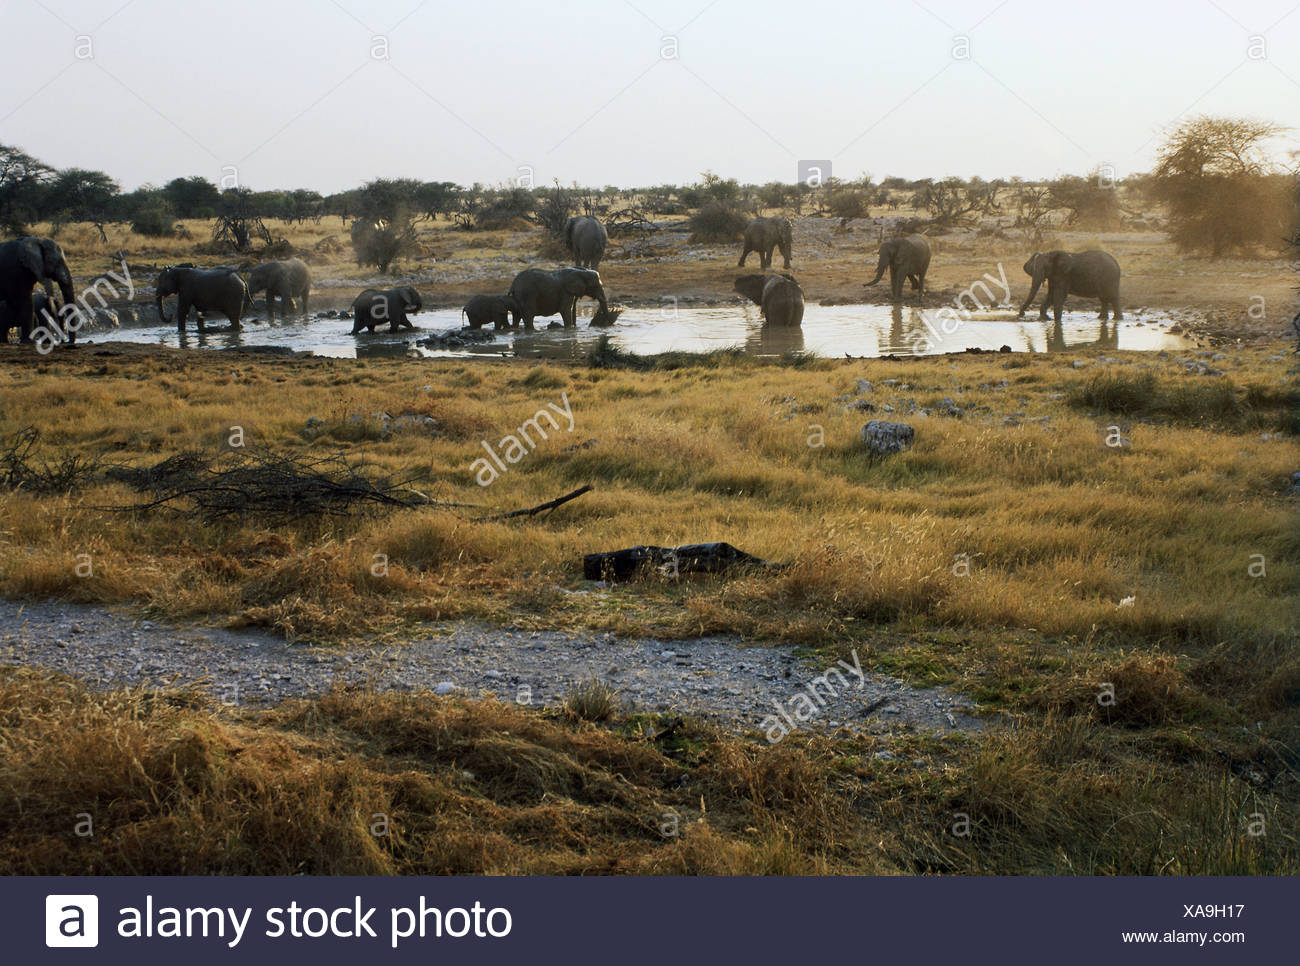 zoology / animals, mammal / mammalian, Elephantidae, African Bush Elephant (Loxodonta africana), herd with cubs at watering place, bathing, Etoscha National Park, Okaukuejo, Namibia, distribution: Africa, Additional-Rights-Clearance-Info-Not-Available - Stock Image